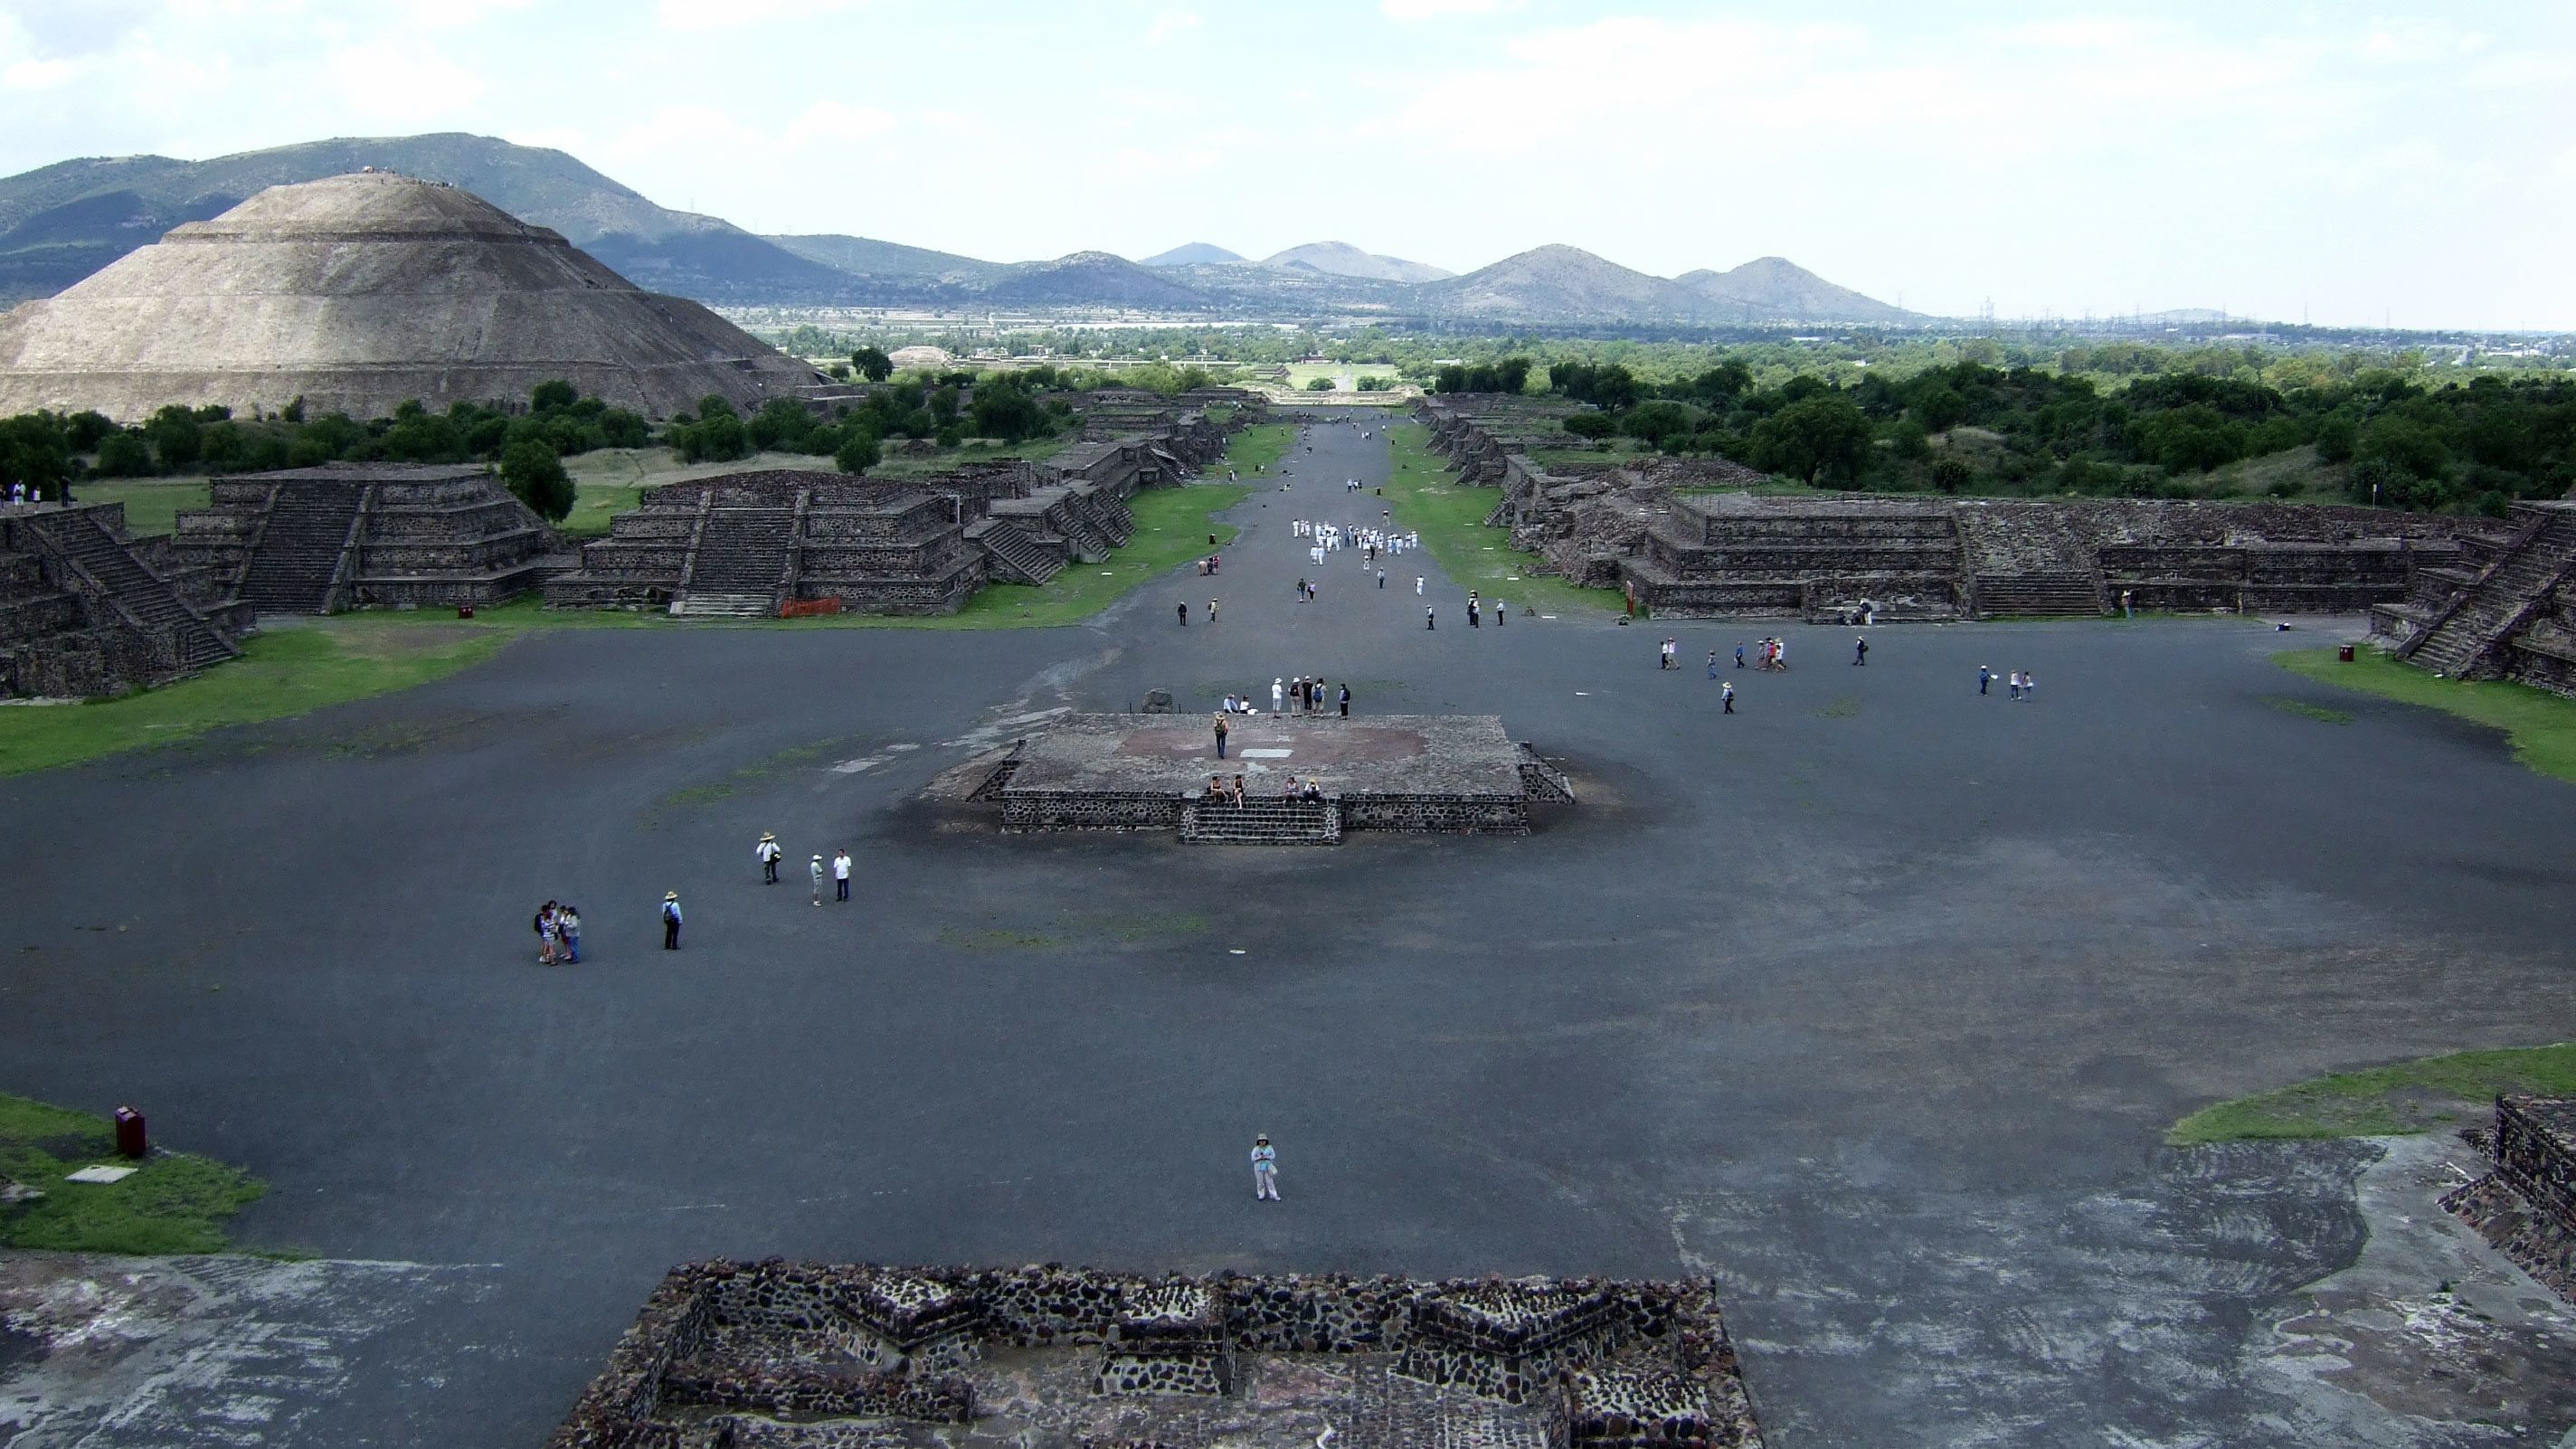 Teotihuacan in Mexico